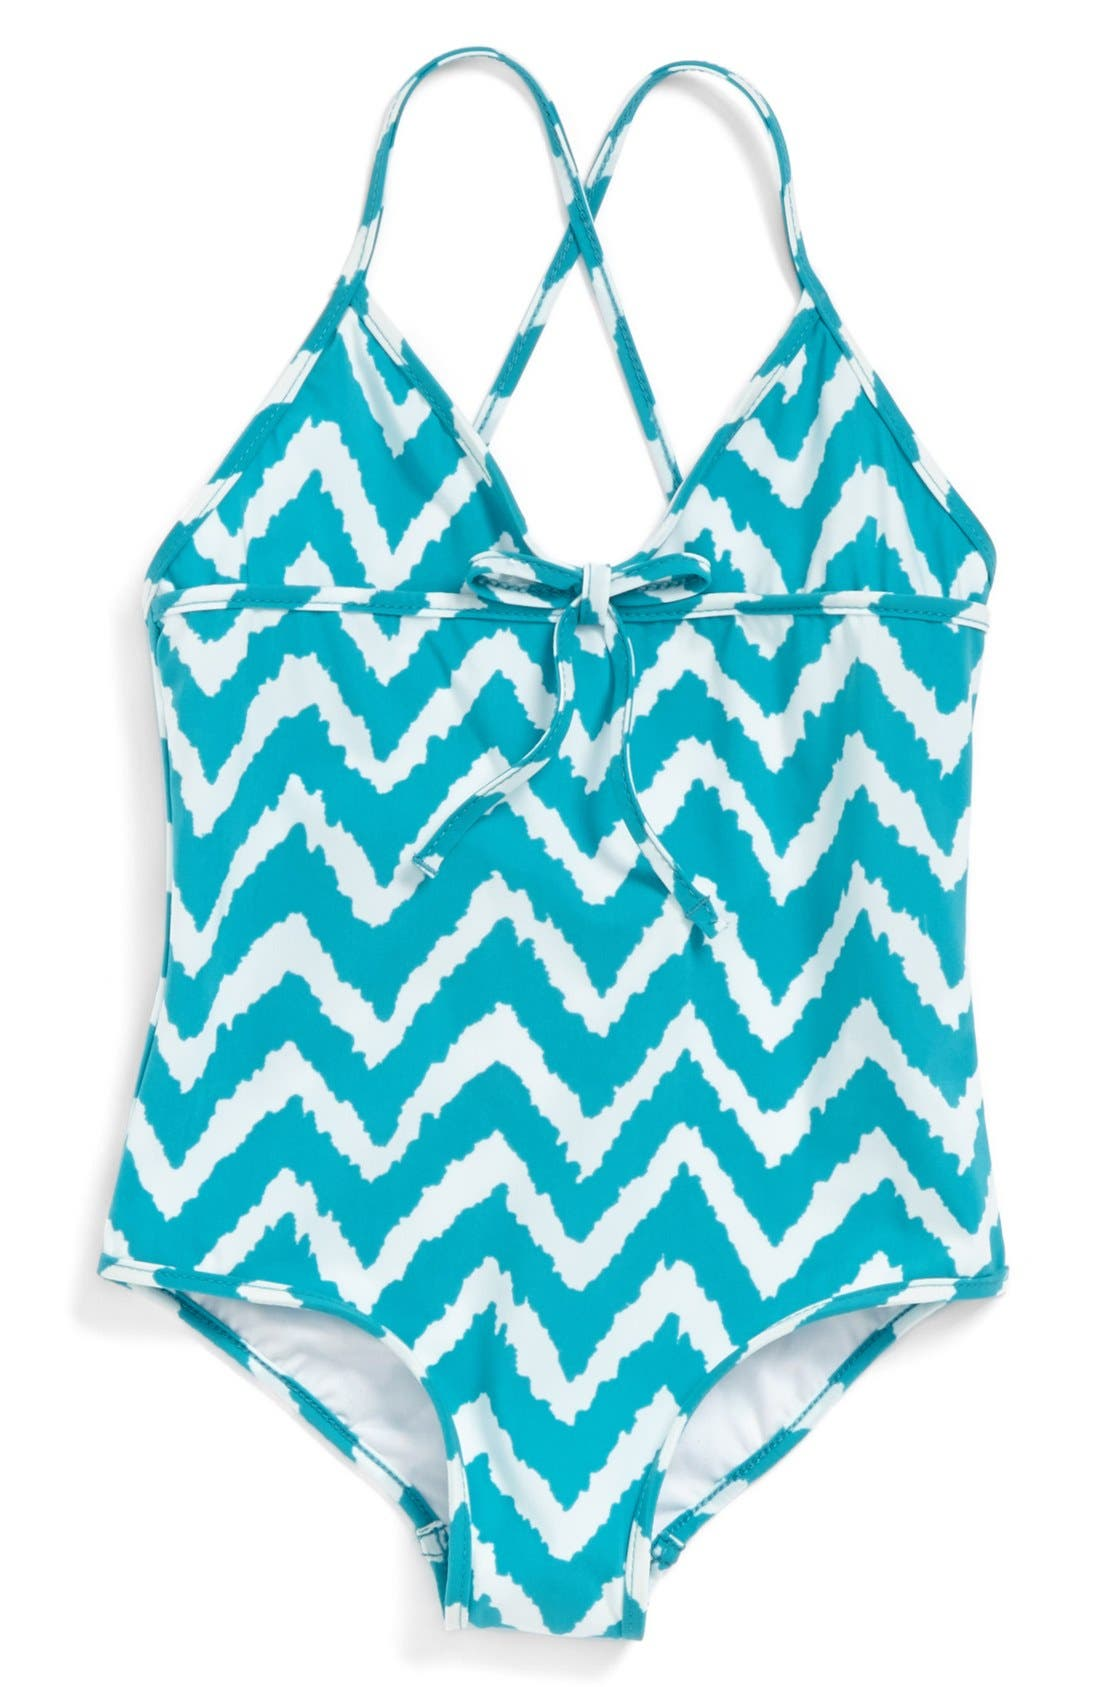 Main Image - Milly Minis Zigzag One-Piece Swimsuit (Toddler Girls, Little Girls & Big Girls)